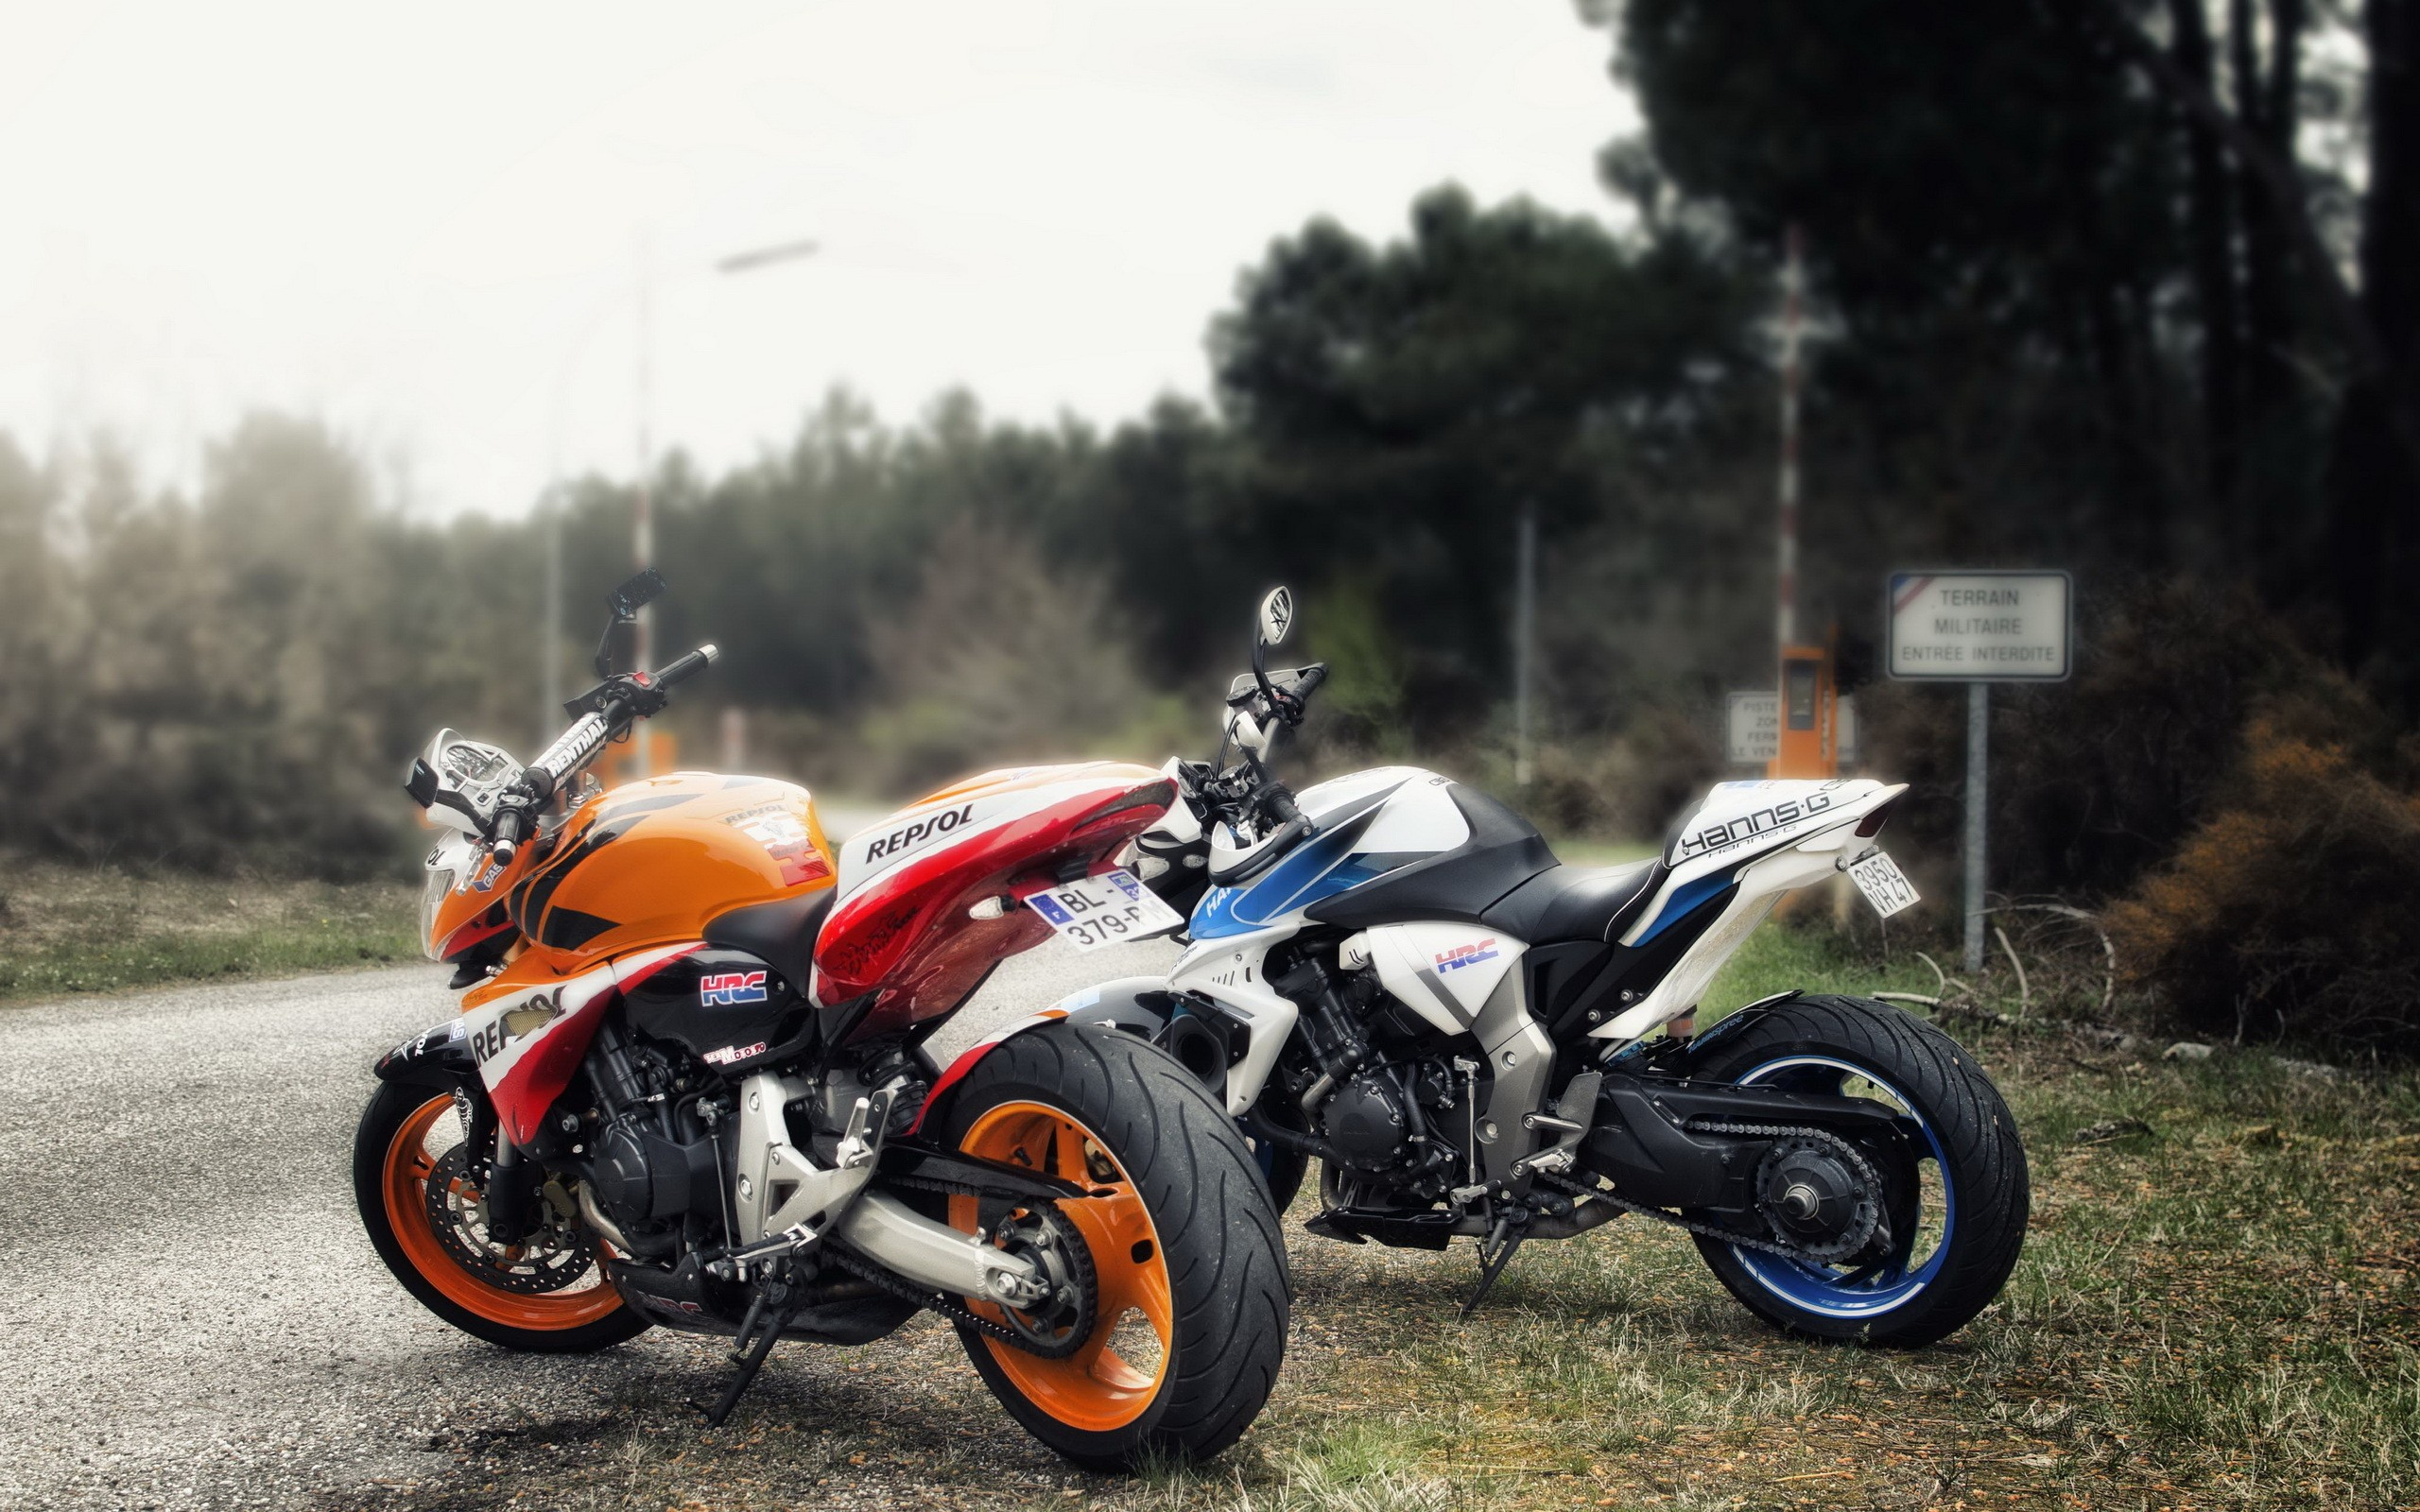 Download the Repsol and Hanns G Wallpaper Repsol and Hanns G 2560x1600